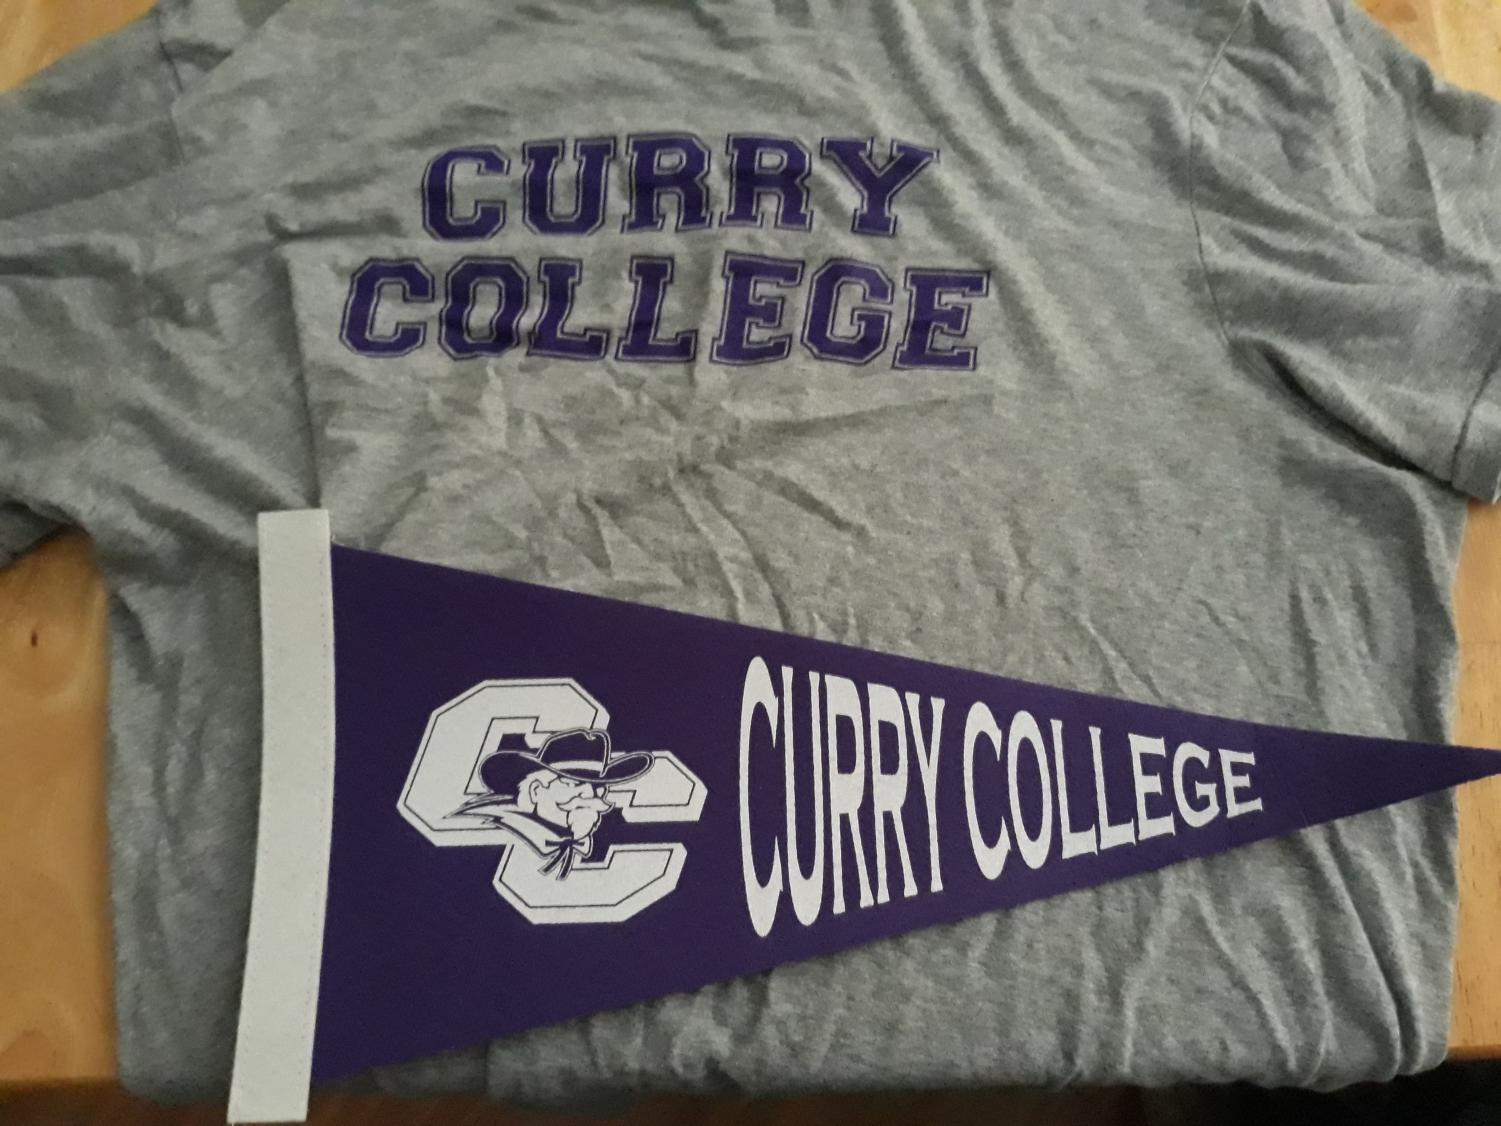 Curry College's athletic teams are known as the Colonels. The school's colors are purple and white, as shown in this pennant and T-shirt with Curry College's insignia.